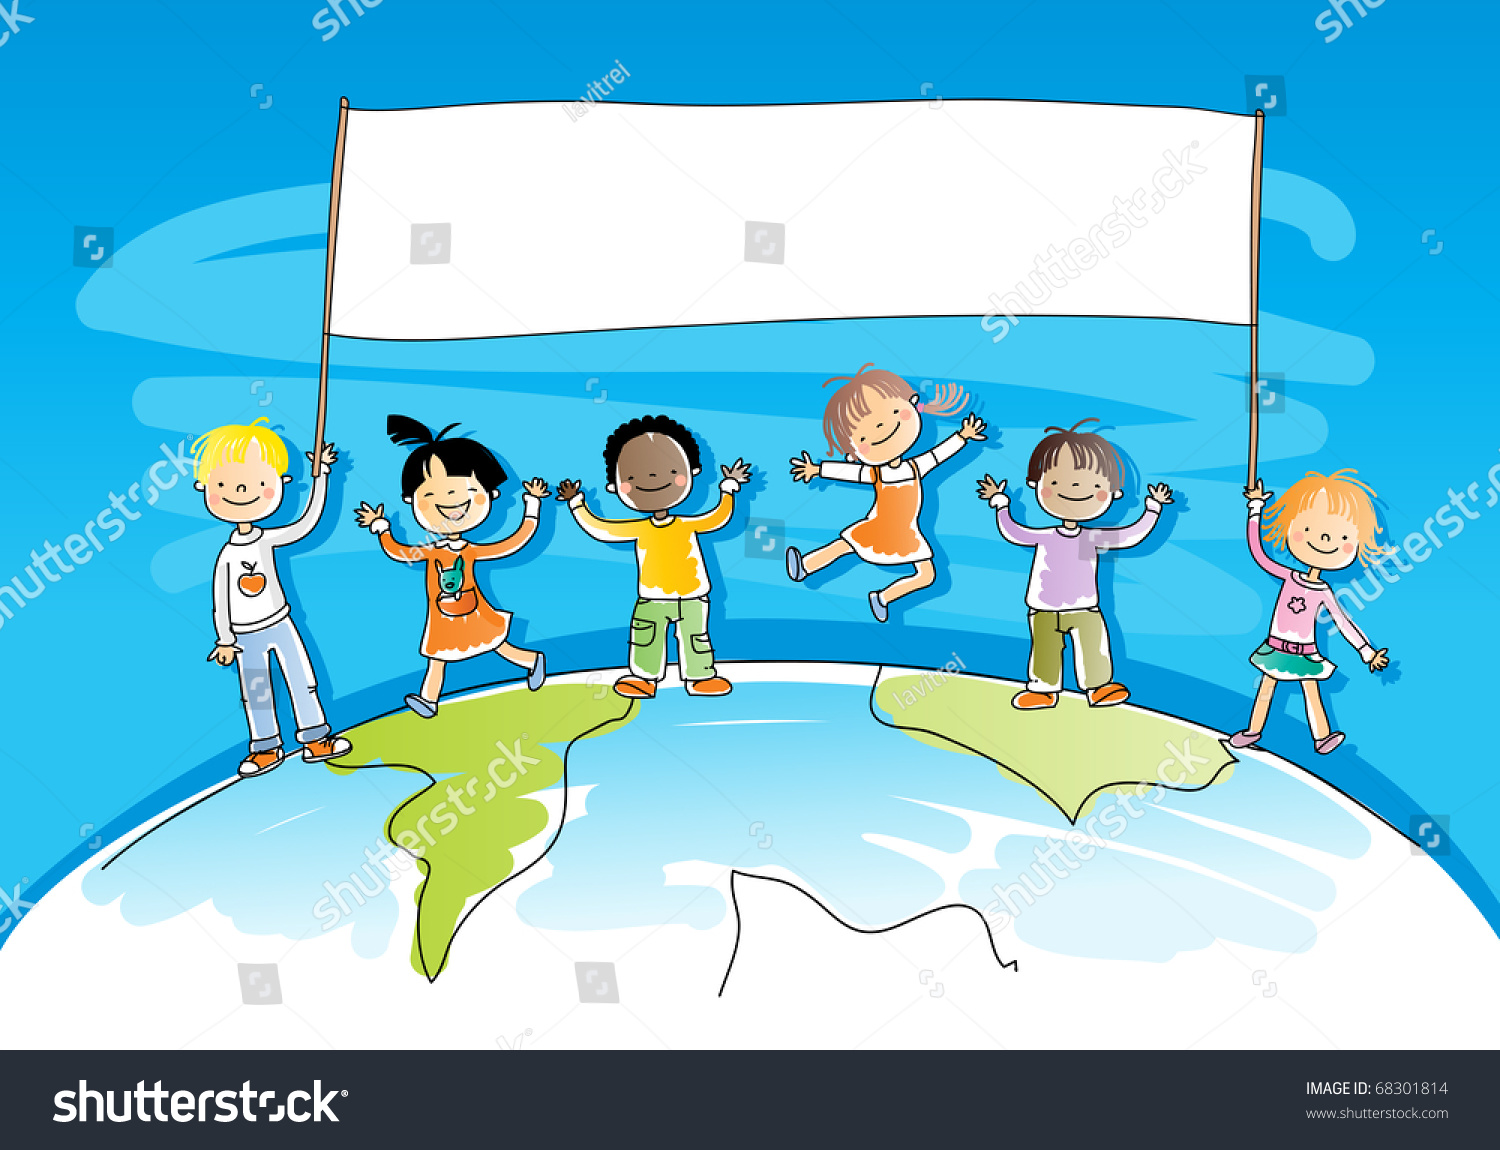 ... Dancing Clipart multicultural kids stock vectors & vector clip art